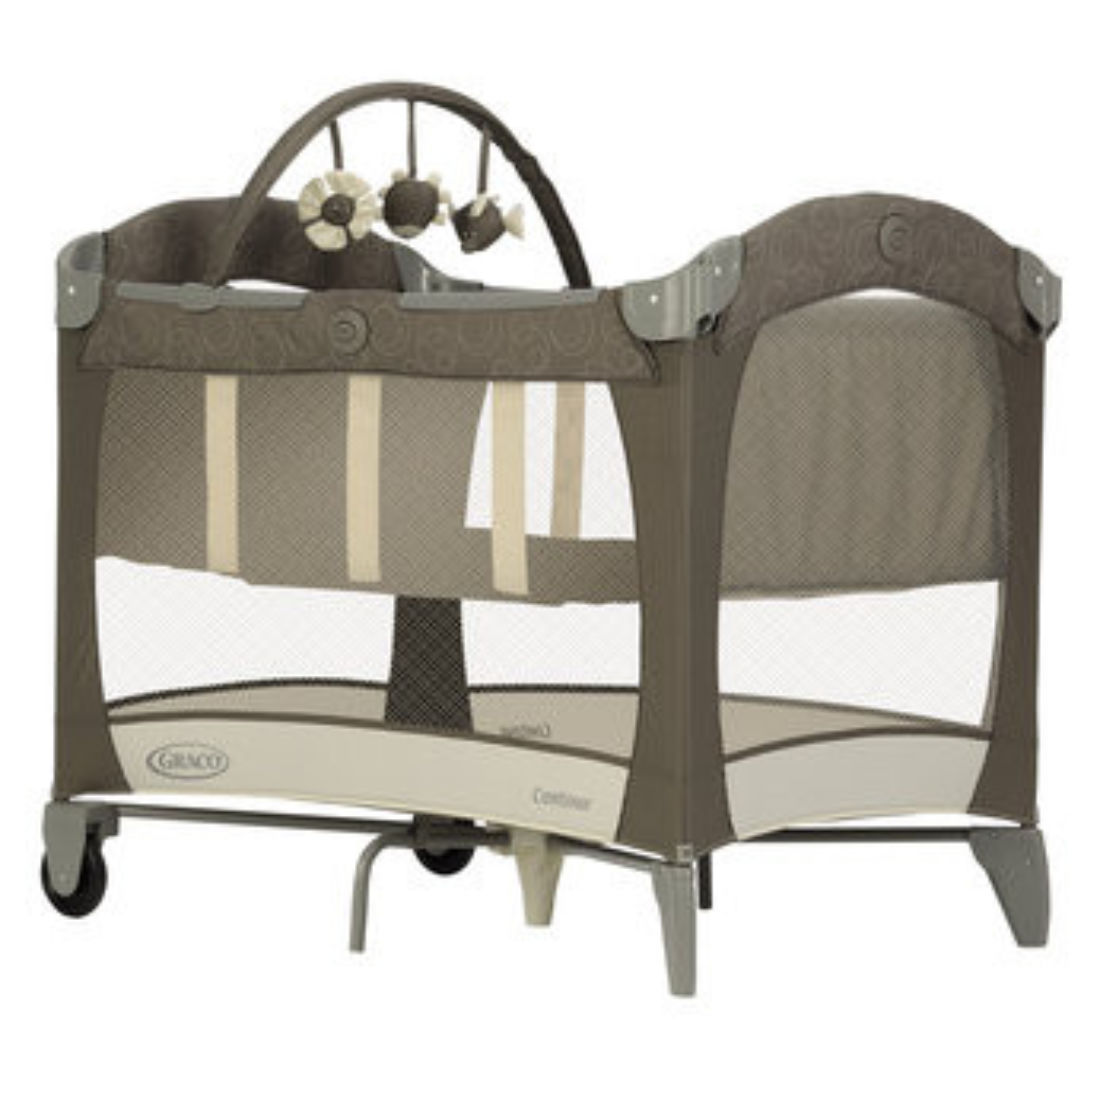 Buy your Toys R Us Travel Cot right now online! Shop toys r us travel cot online.